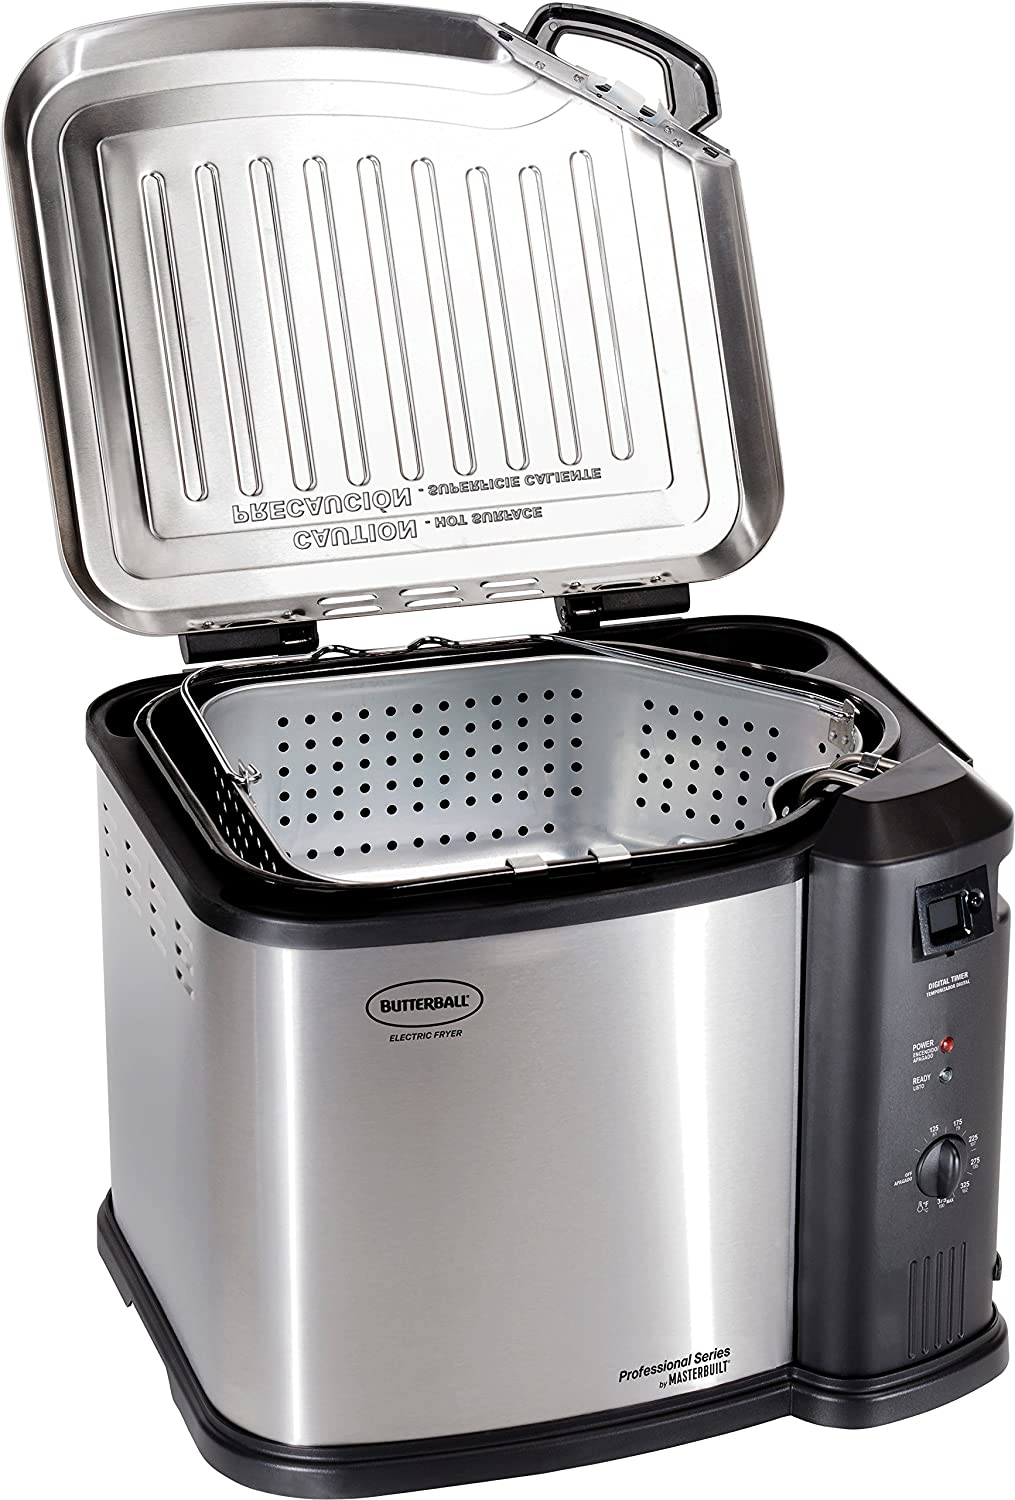 Butterball MB23010618 Masterbuilt Fryer, XL, Stainless Steel